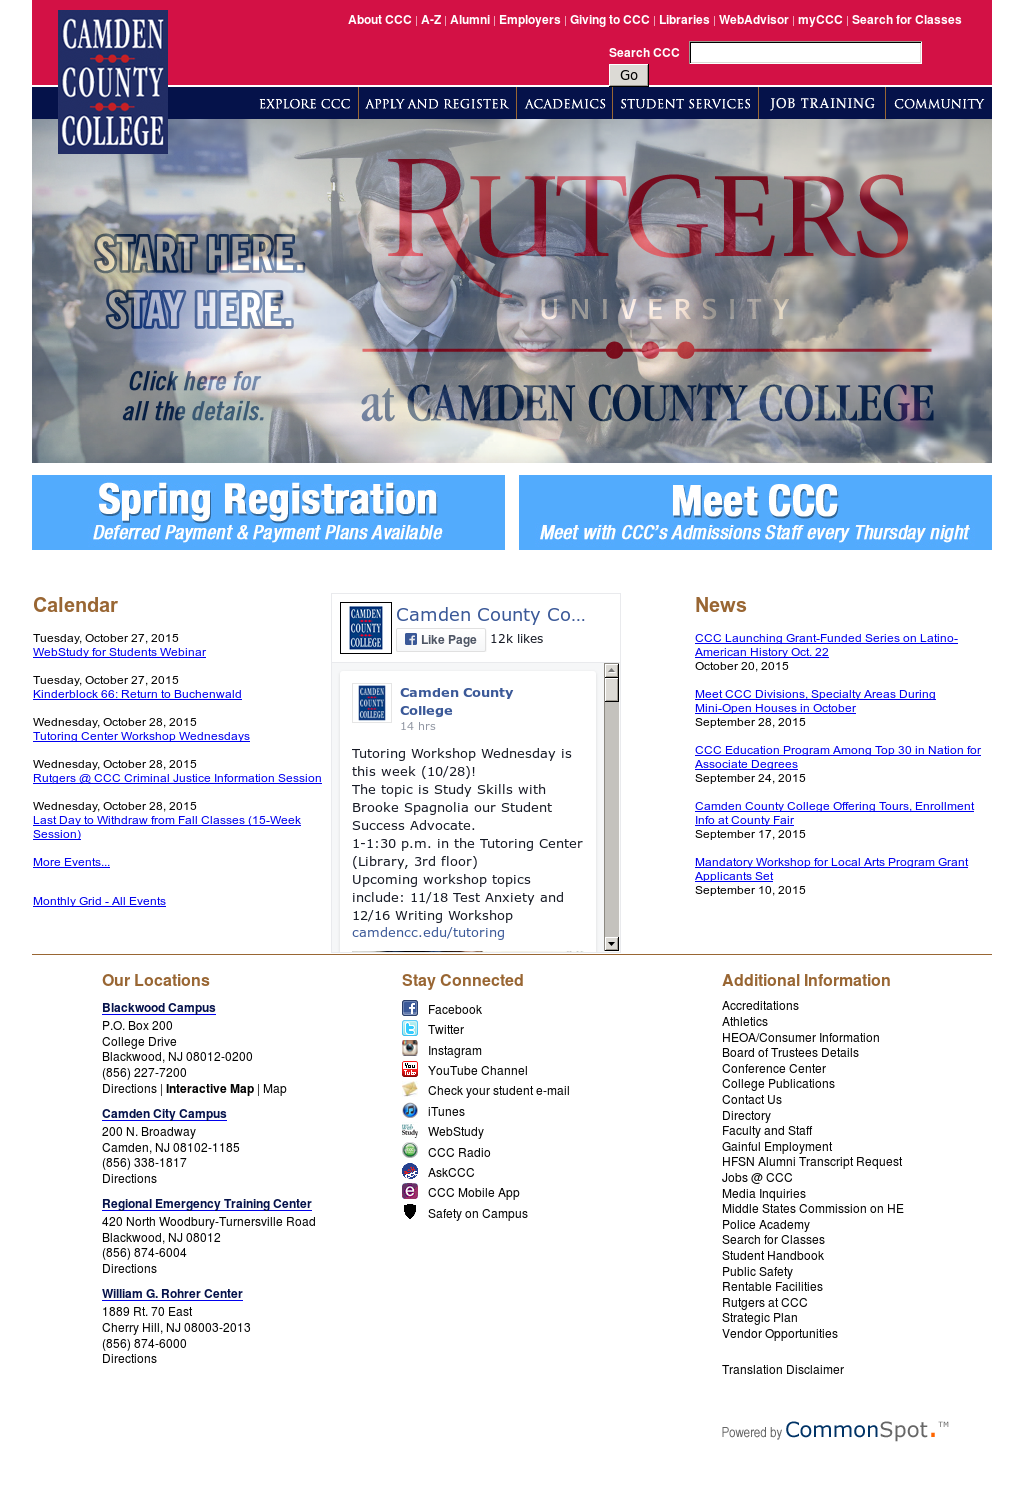 Camden County College Compeors, Revenue and Employees - Owler ... on